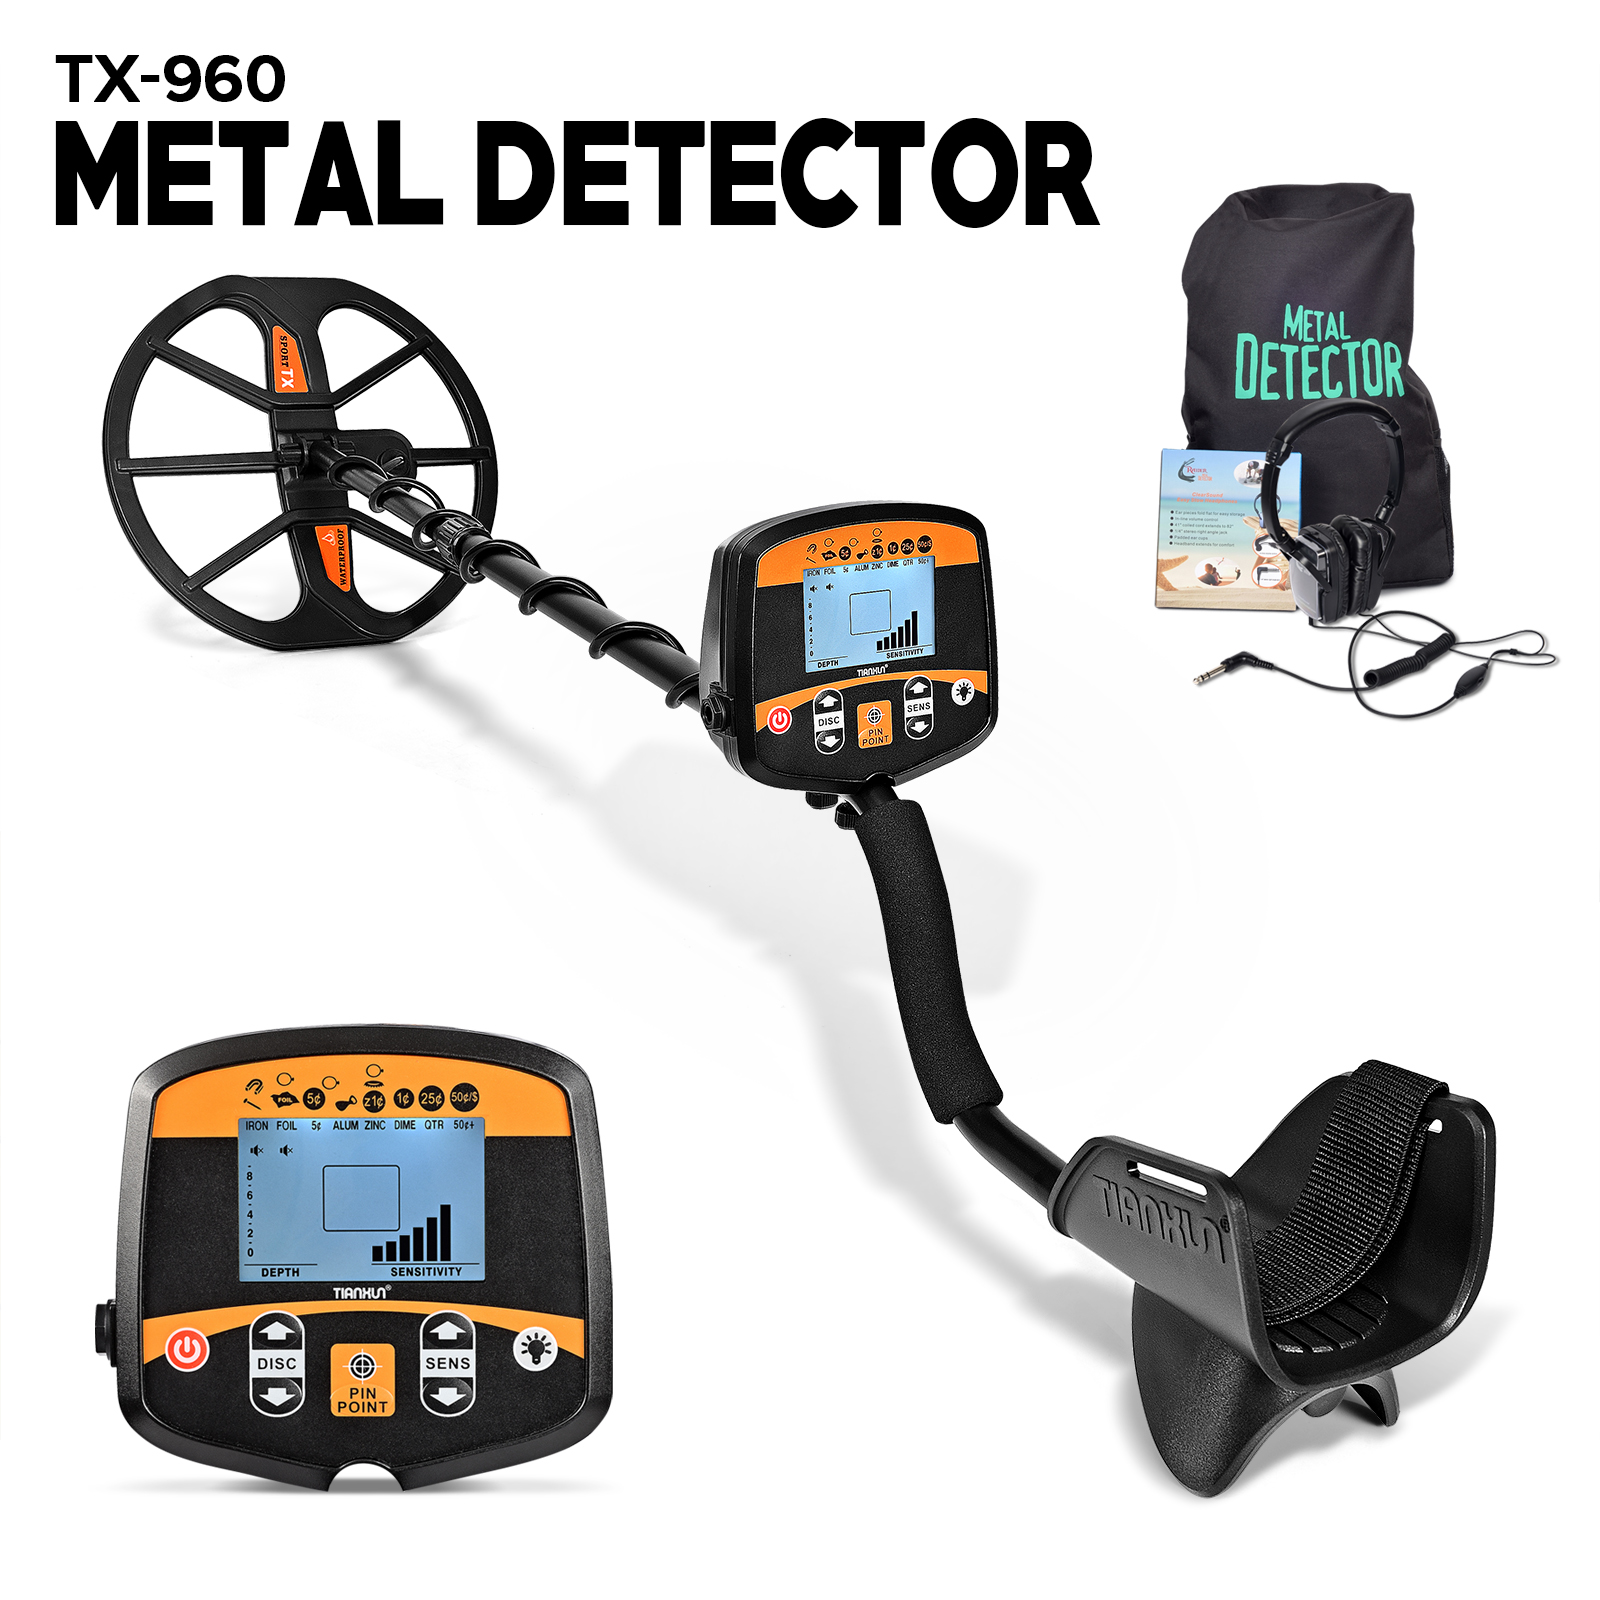 Professional Metal Detector Underground Depth Scanner Search Finder Gold Treasure Hunter Detecting Pinpointer TX-960